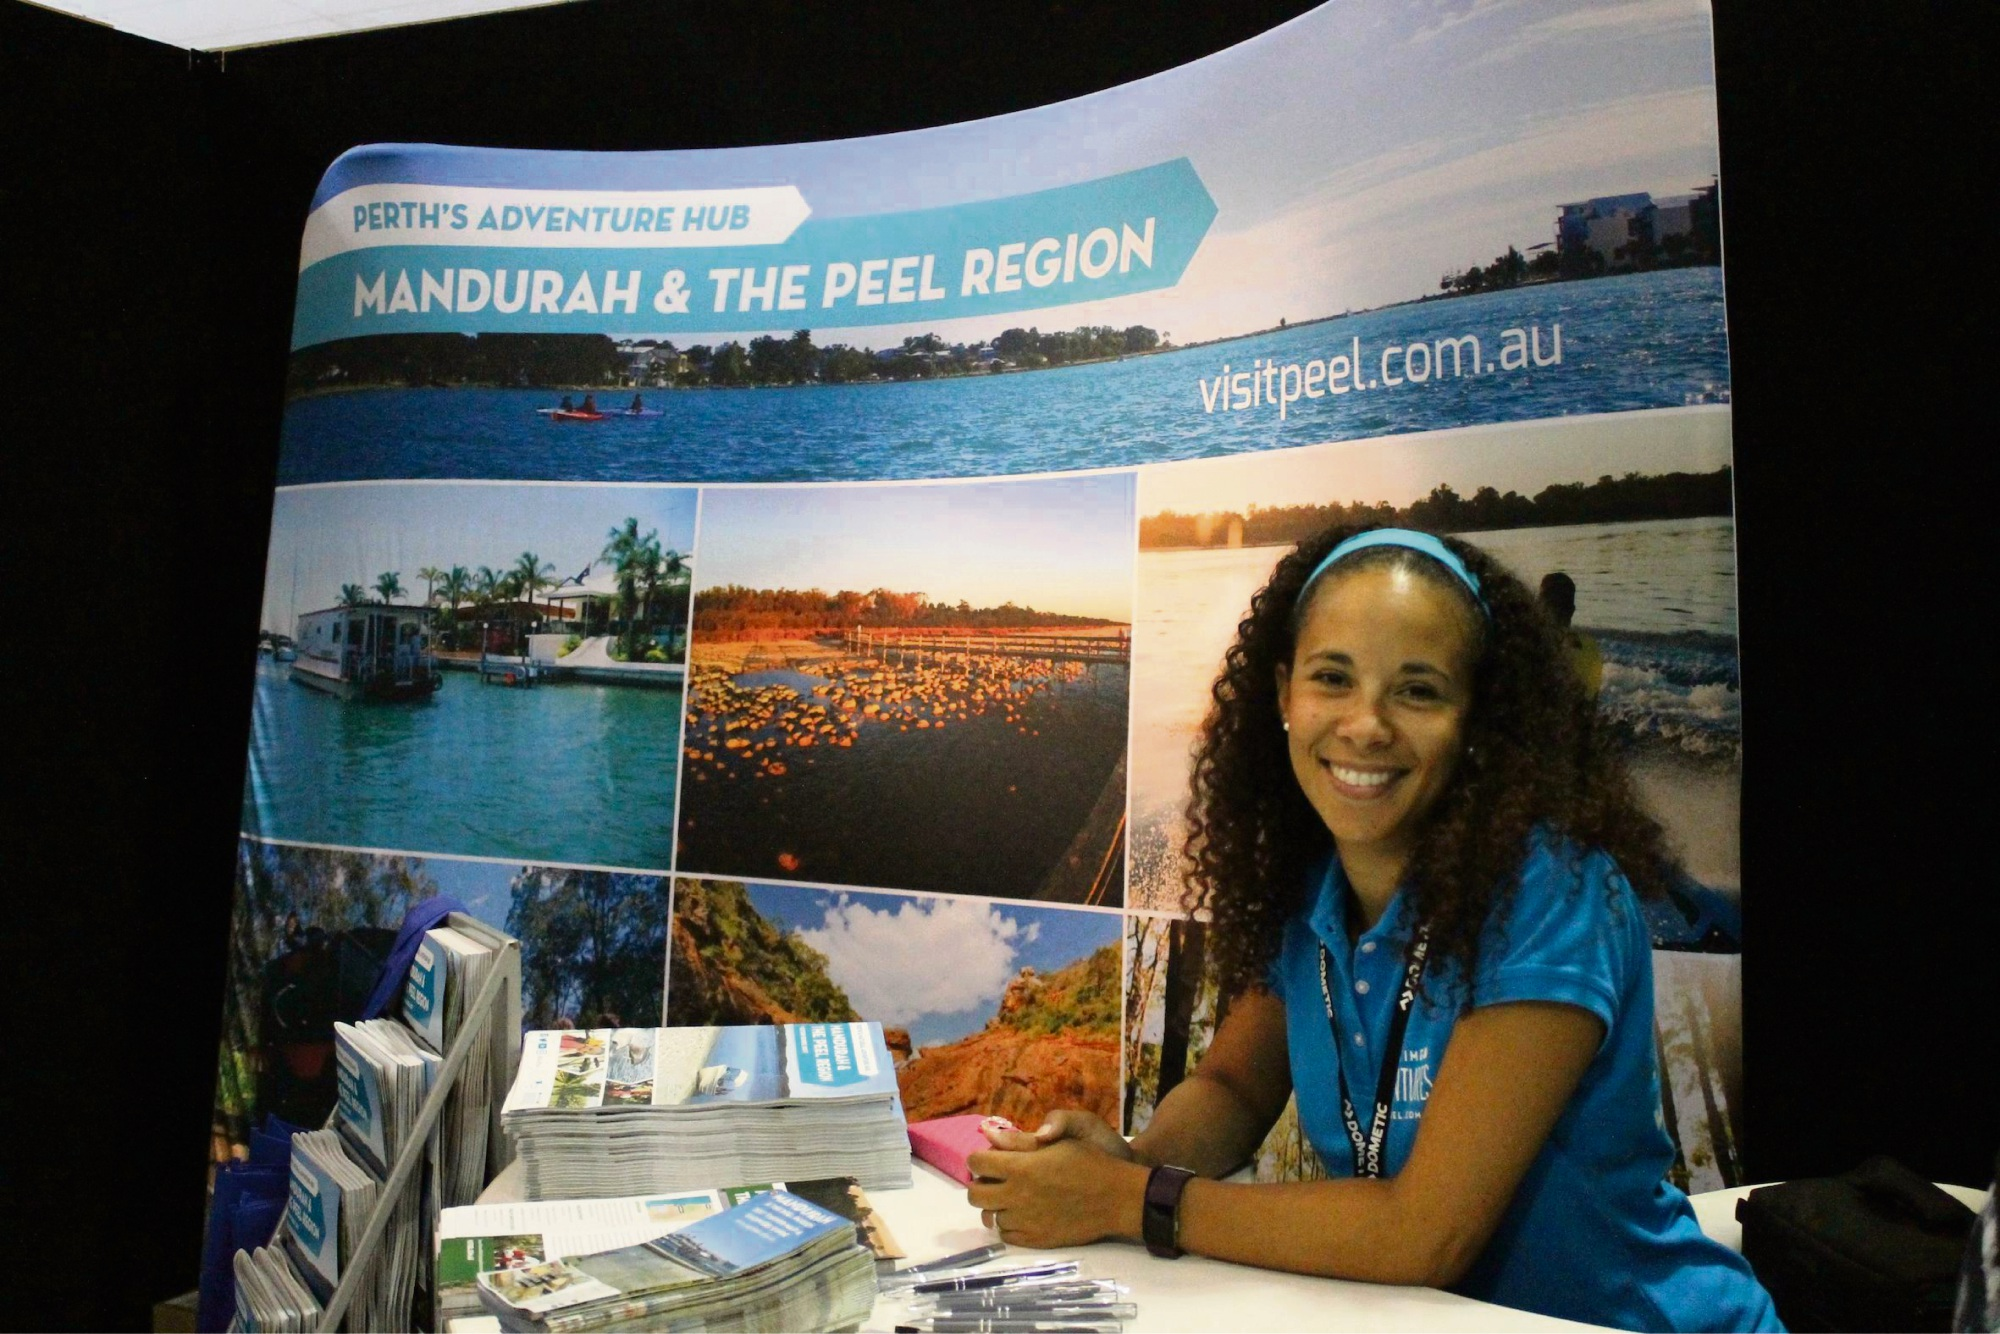 Peel Region continues to grow as popular tourism region, says MAPTO